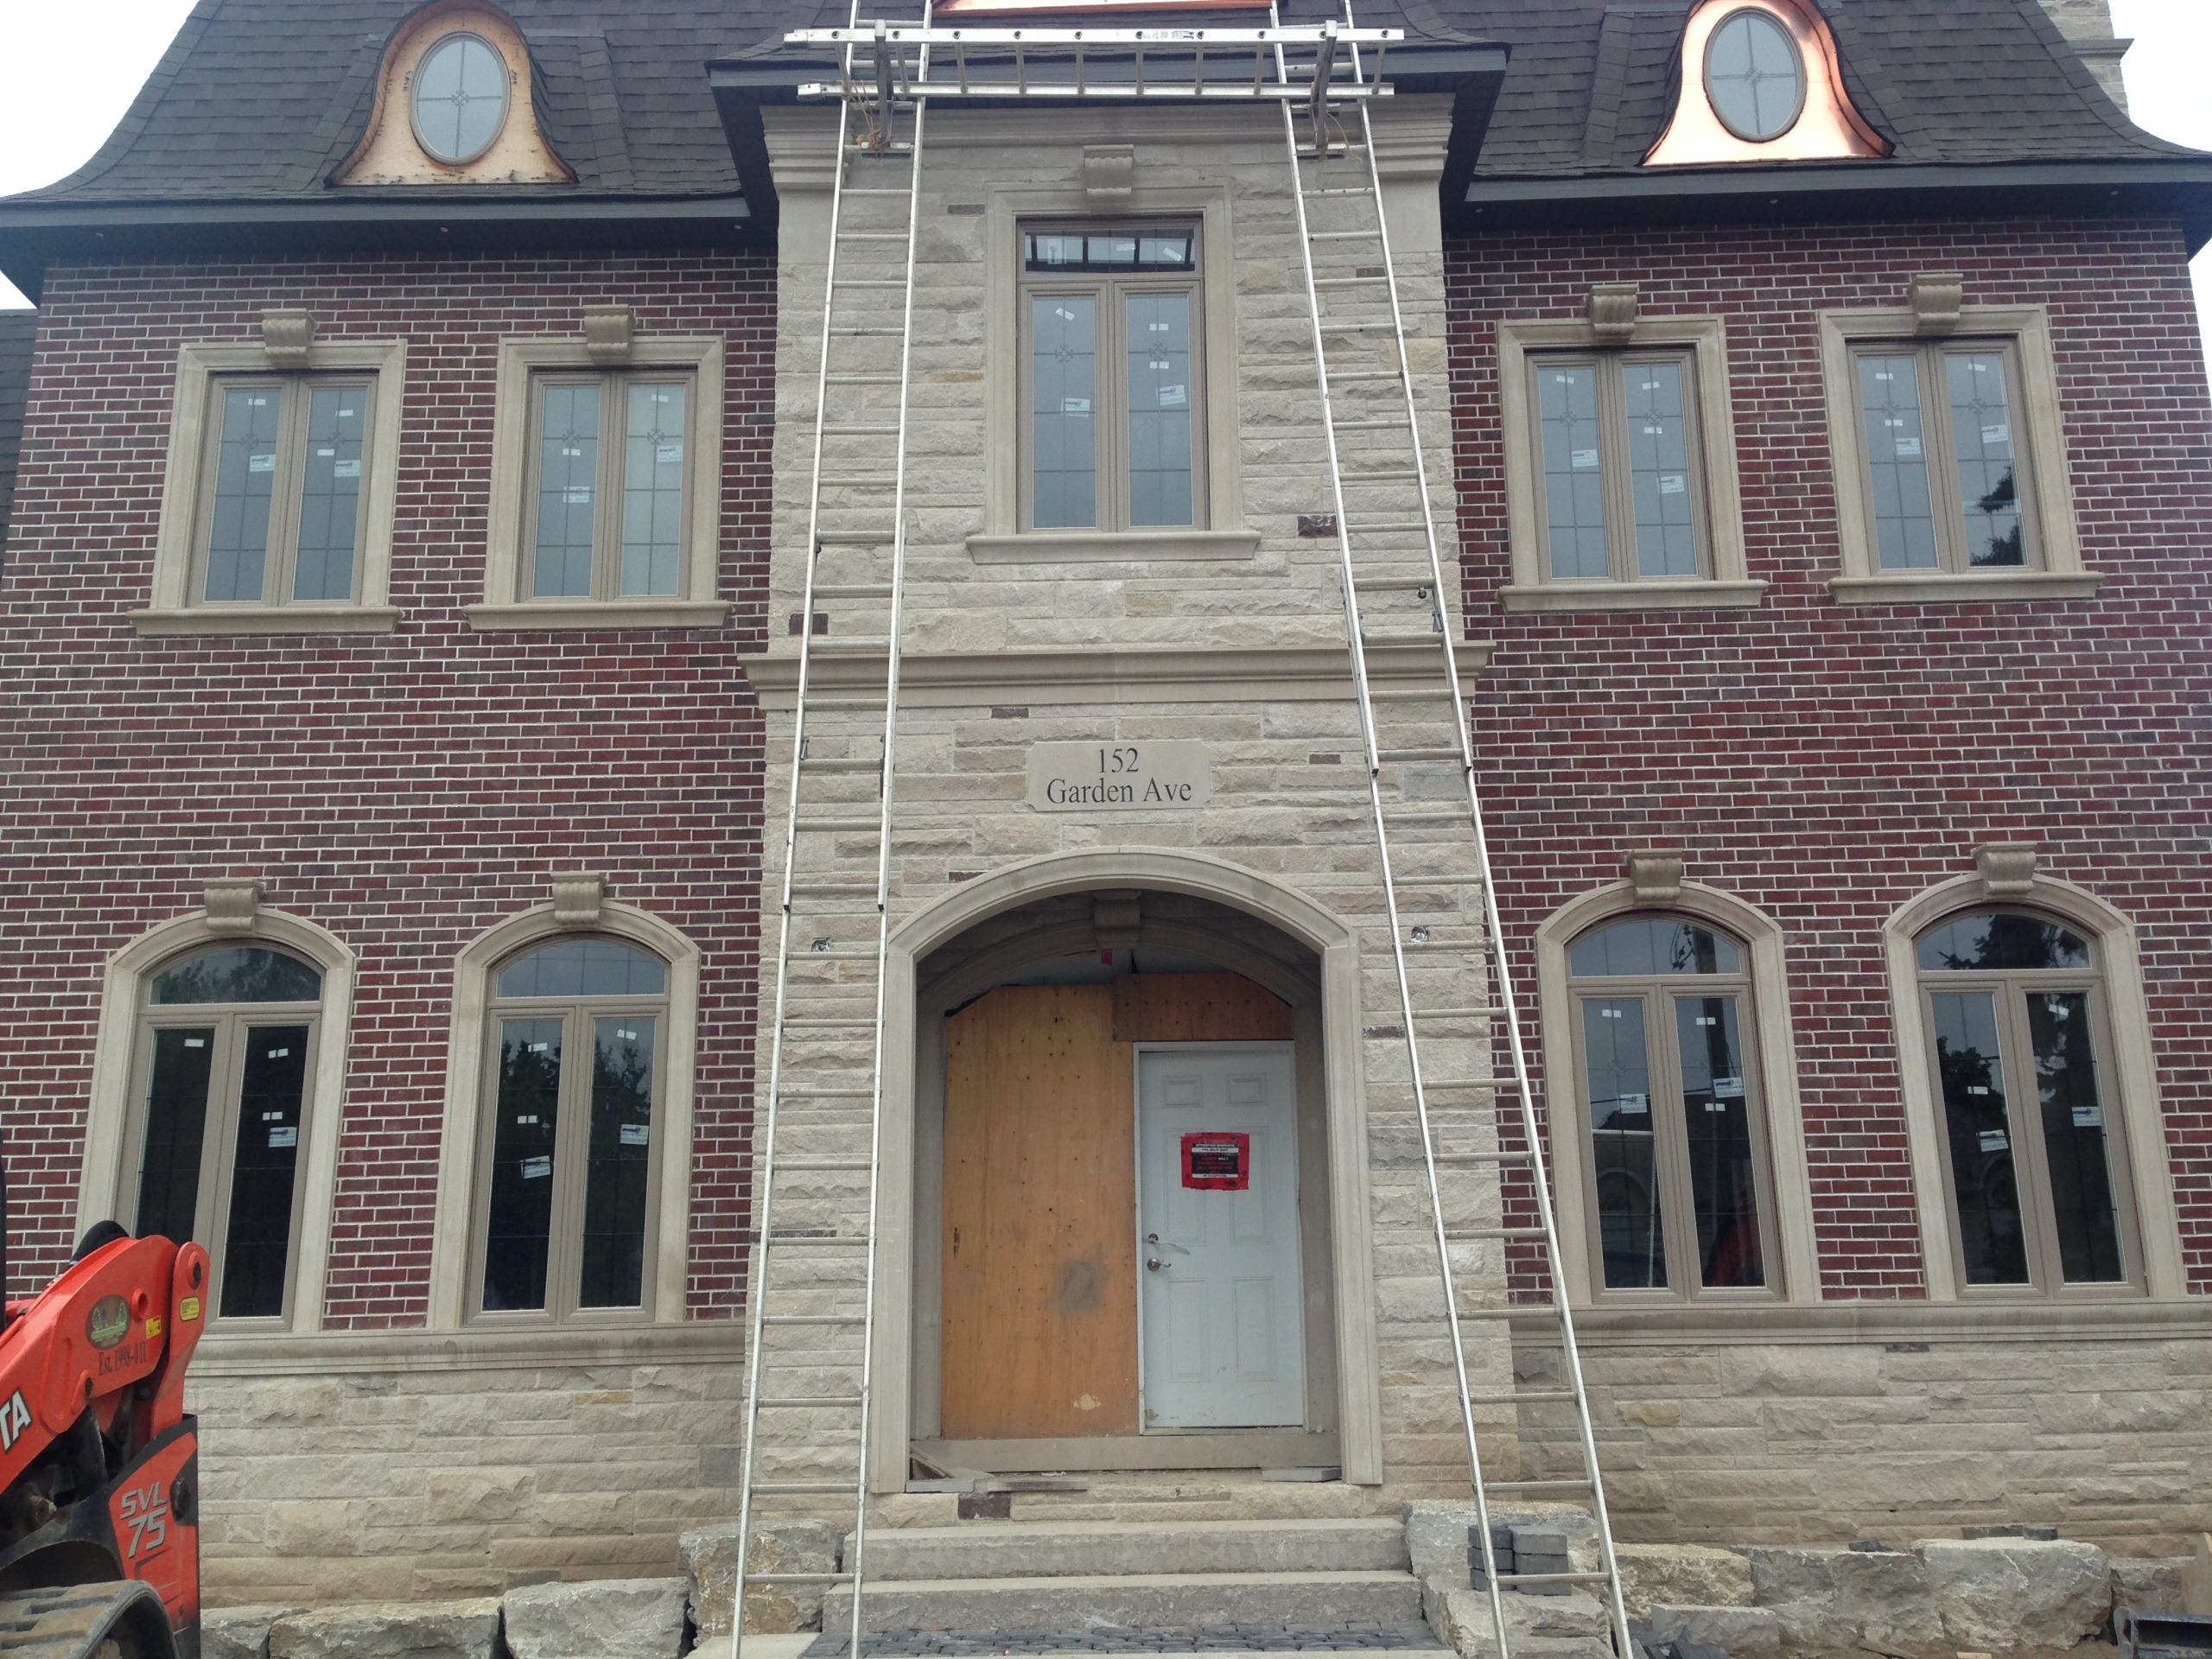 Photo of the front of a custom home with brick walls and a natural stone entrance and skirt